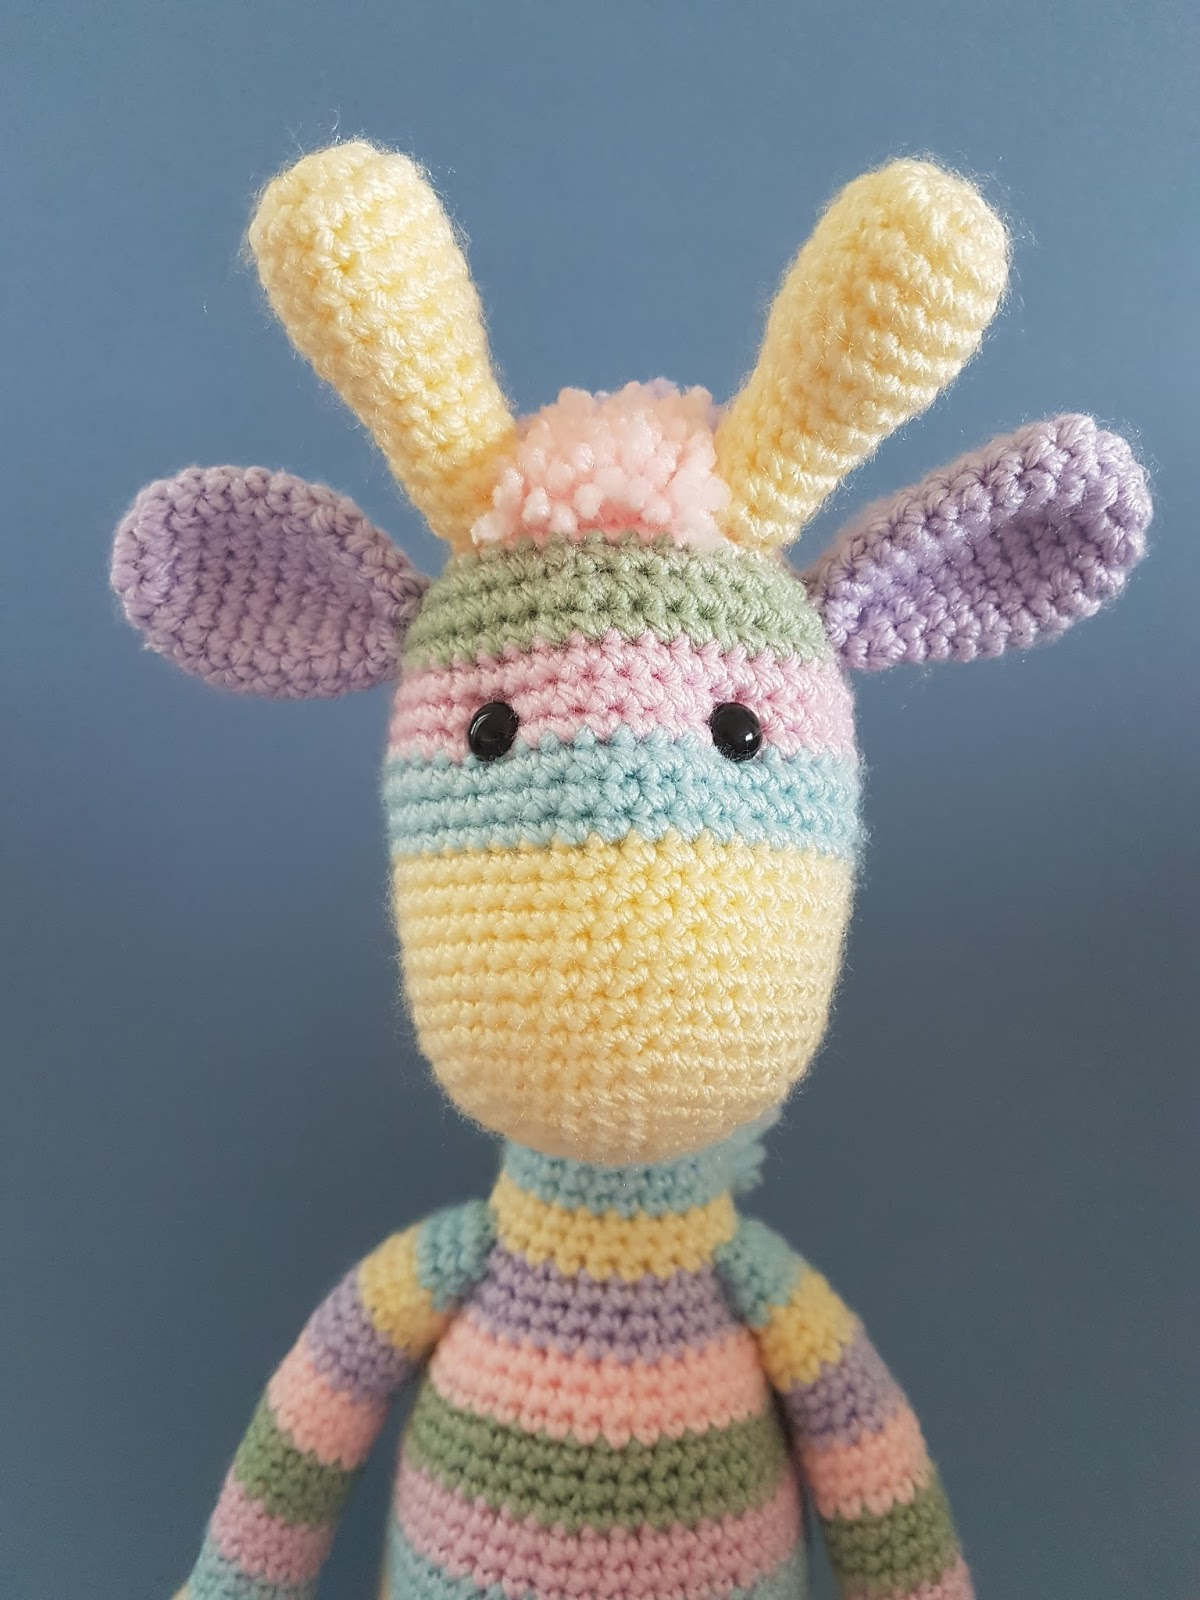 Ravelry: Baby Giraffe Amigurumi pattern by Courtney Deley | 1600x1200